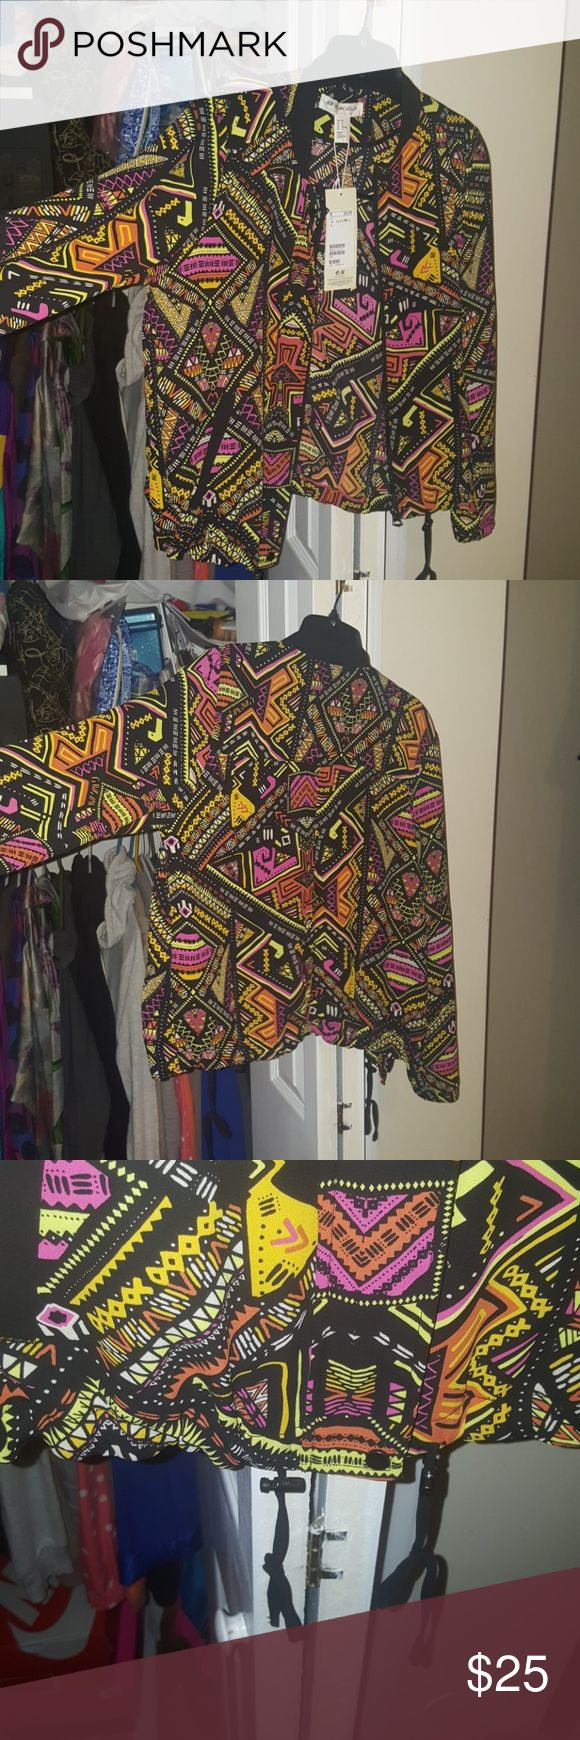 H&M x Coachella ORIGINAL Collection Bomber Jacket H&M <3 Coachella 2016 Collection Bomber jacket. Very light weight Mesh Material. Tribal Print. Never Worn w tags. H&M Jackets & Coats